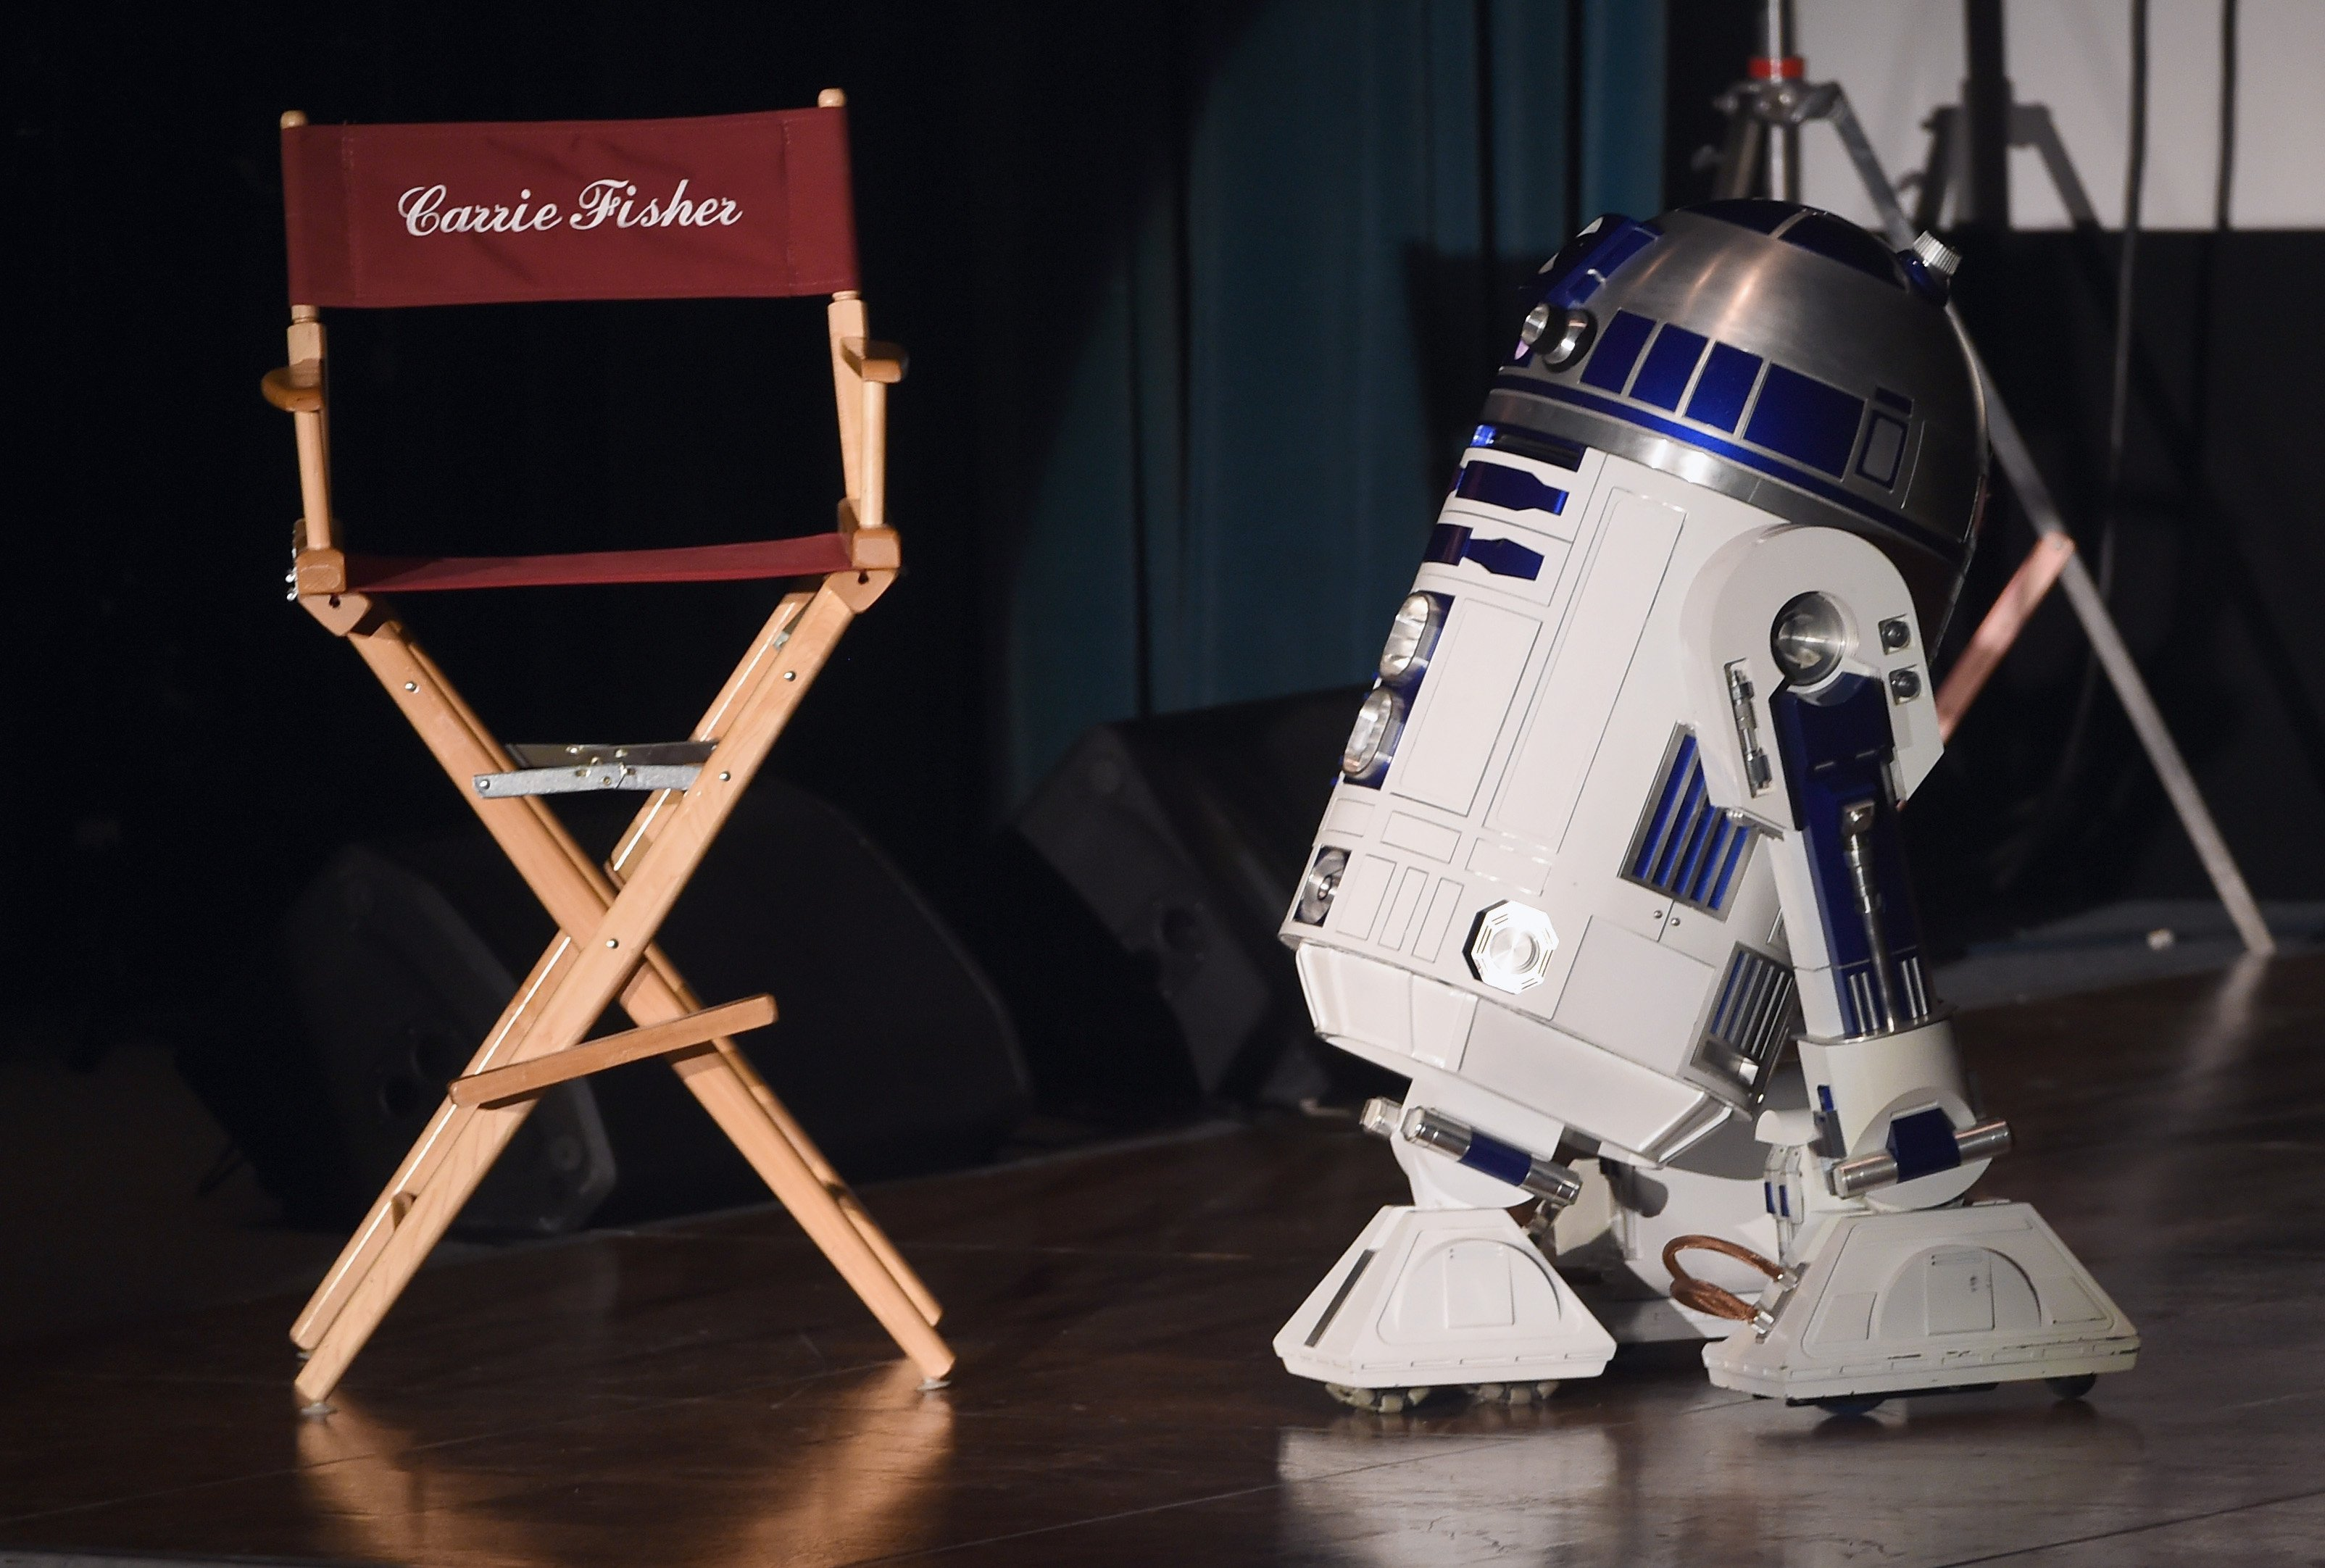 R2-D2 at the Debbie Reynolds and Carrie Fisher Memorial at Forest Lawn Cemetery on March 25, 2017 in Los Angeles